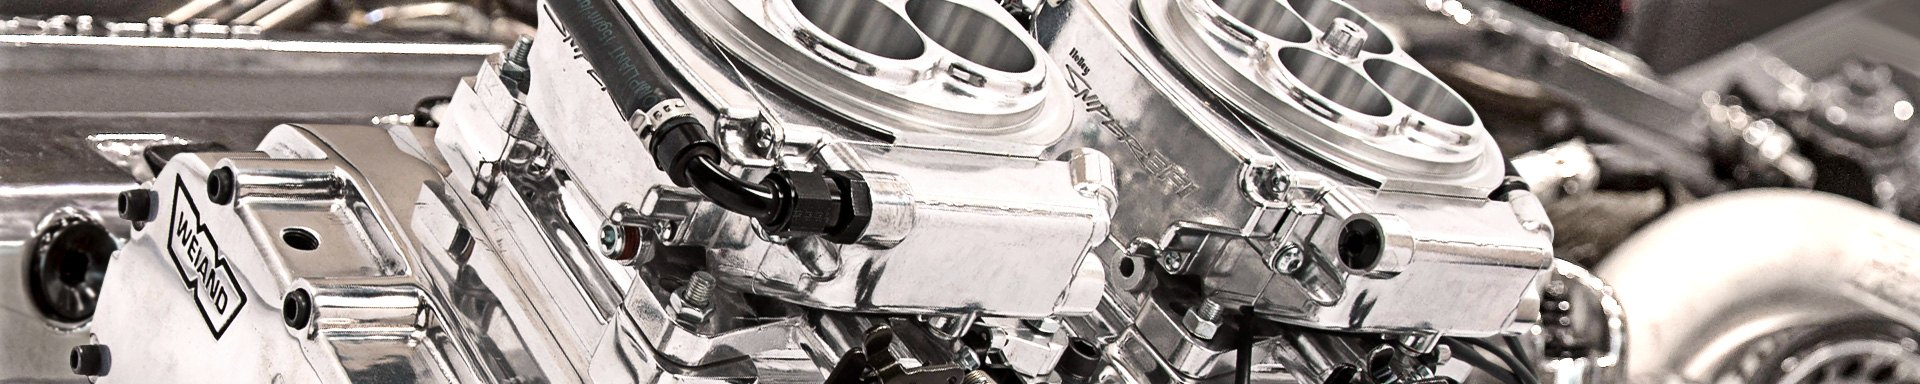 Performance Fuel System Parts